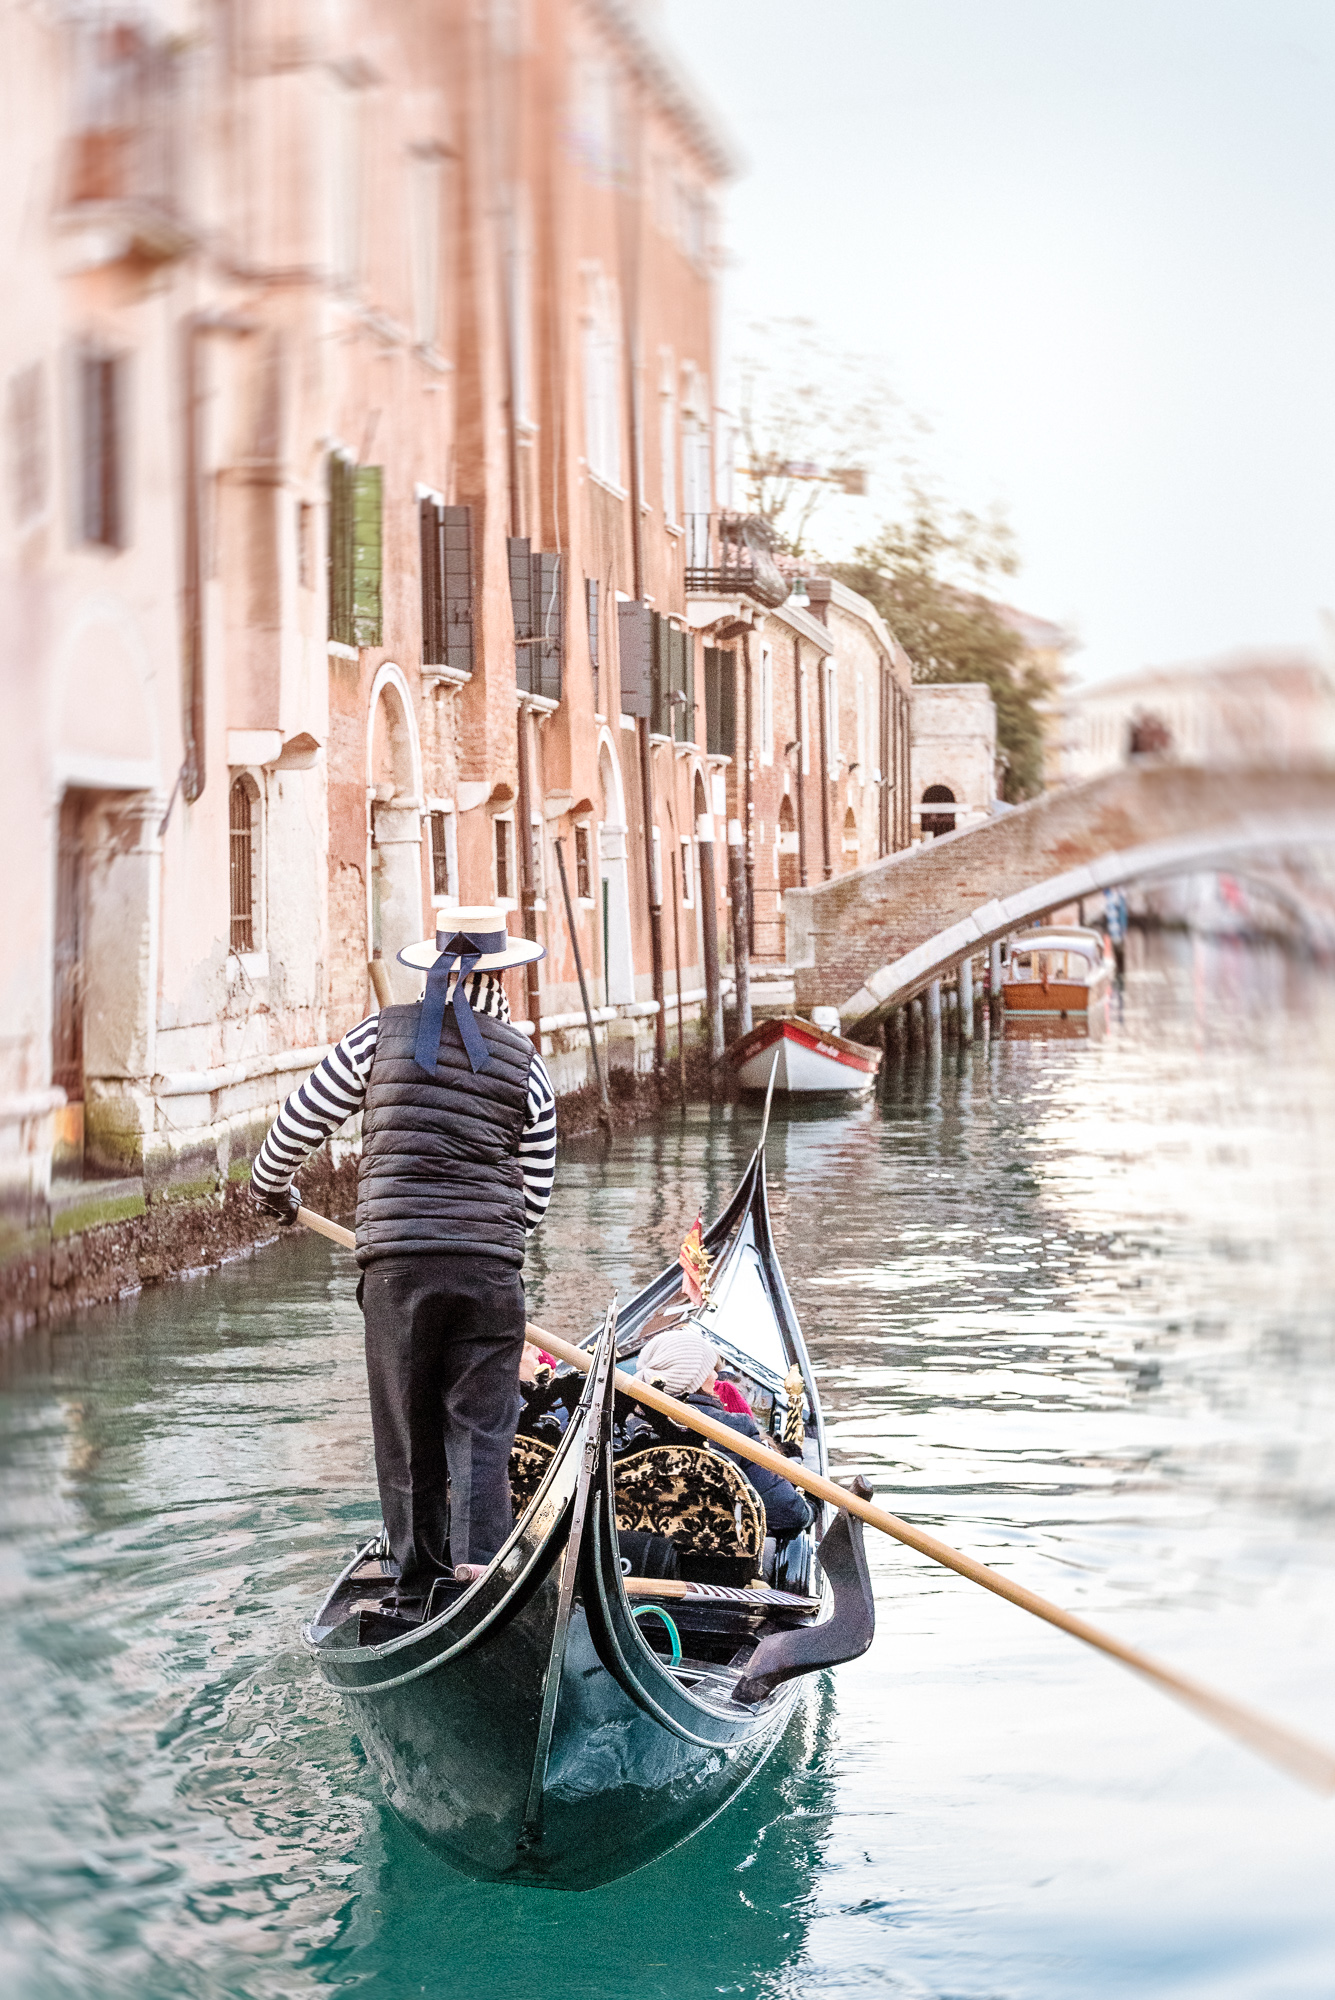 Venice Canal The Gondolier